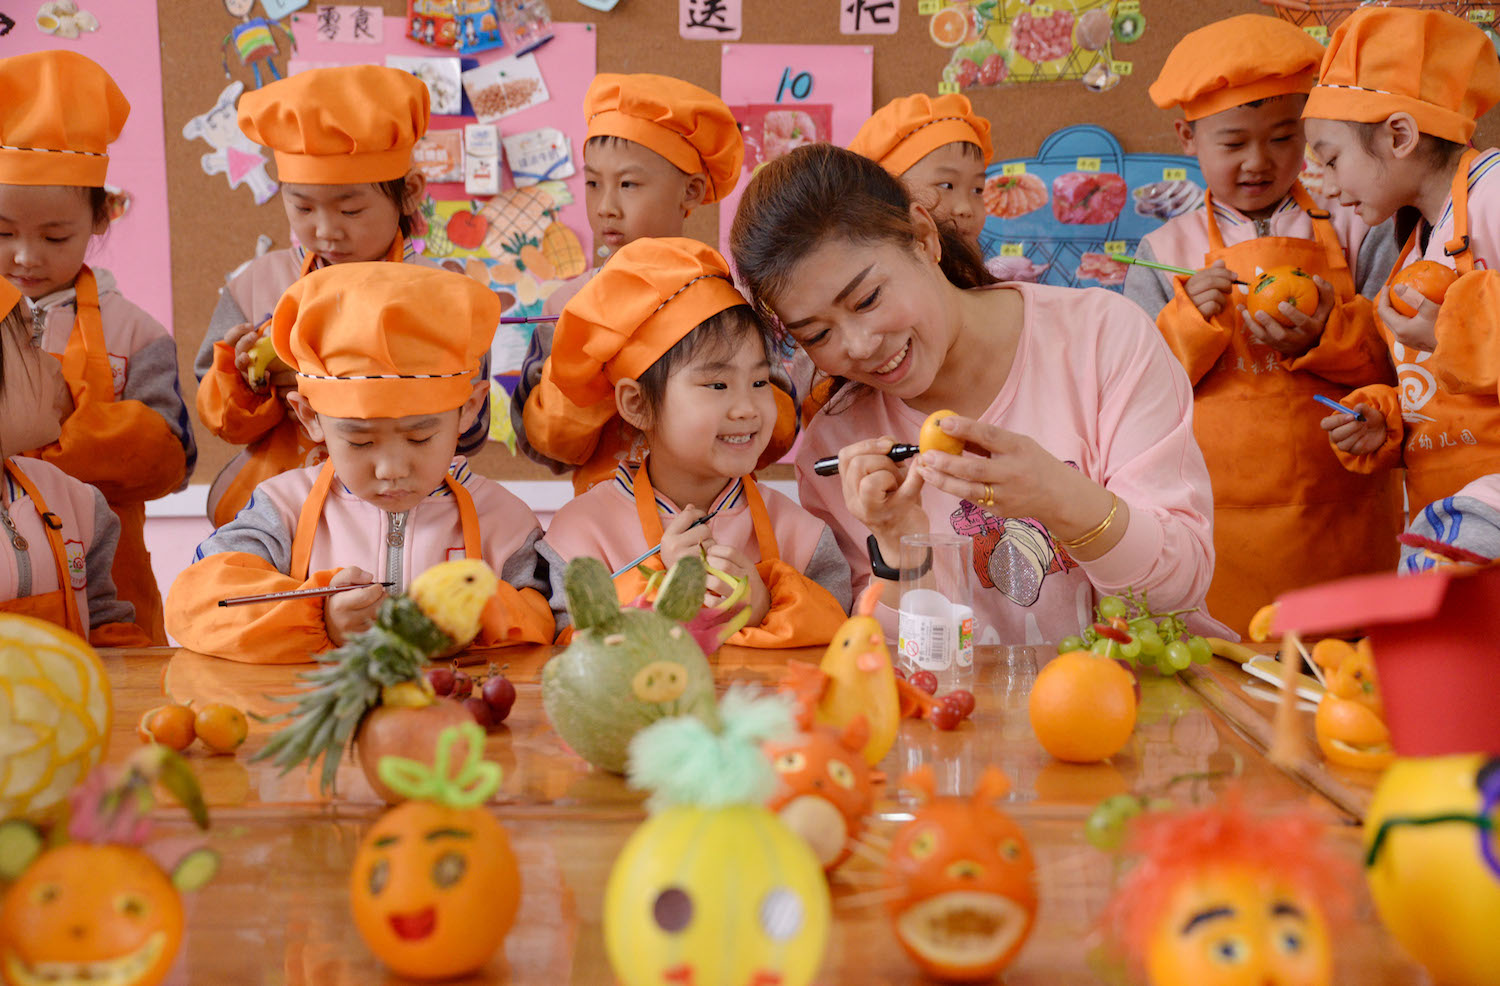 A teacher surrounded by children draws a smiley face on a fruit to welcome World Smile Day at a kindergarten in Handan, China, on May 8.